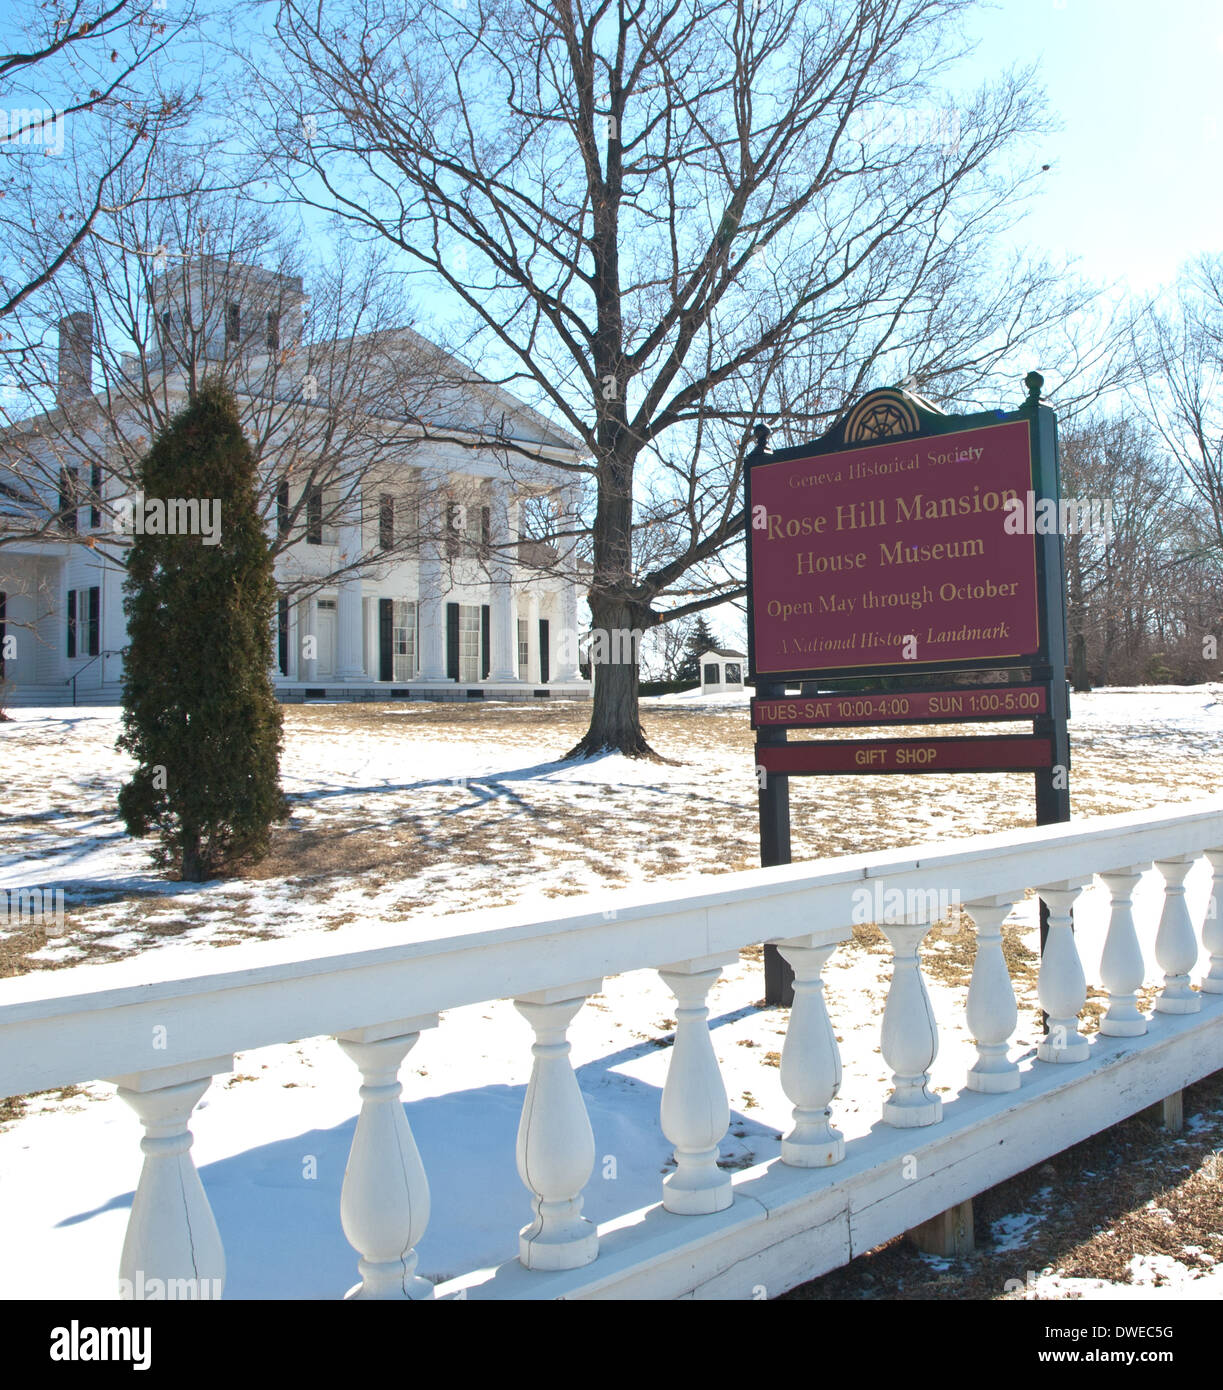 Geneva , New York, USA. March 6,2014. The beautiful Rose Hill l Mansion in wintertime - Stock Image